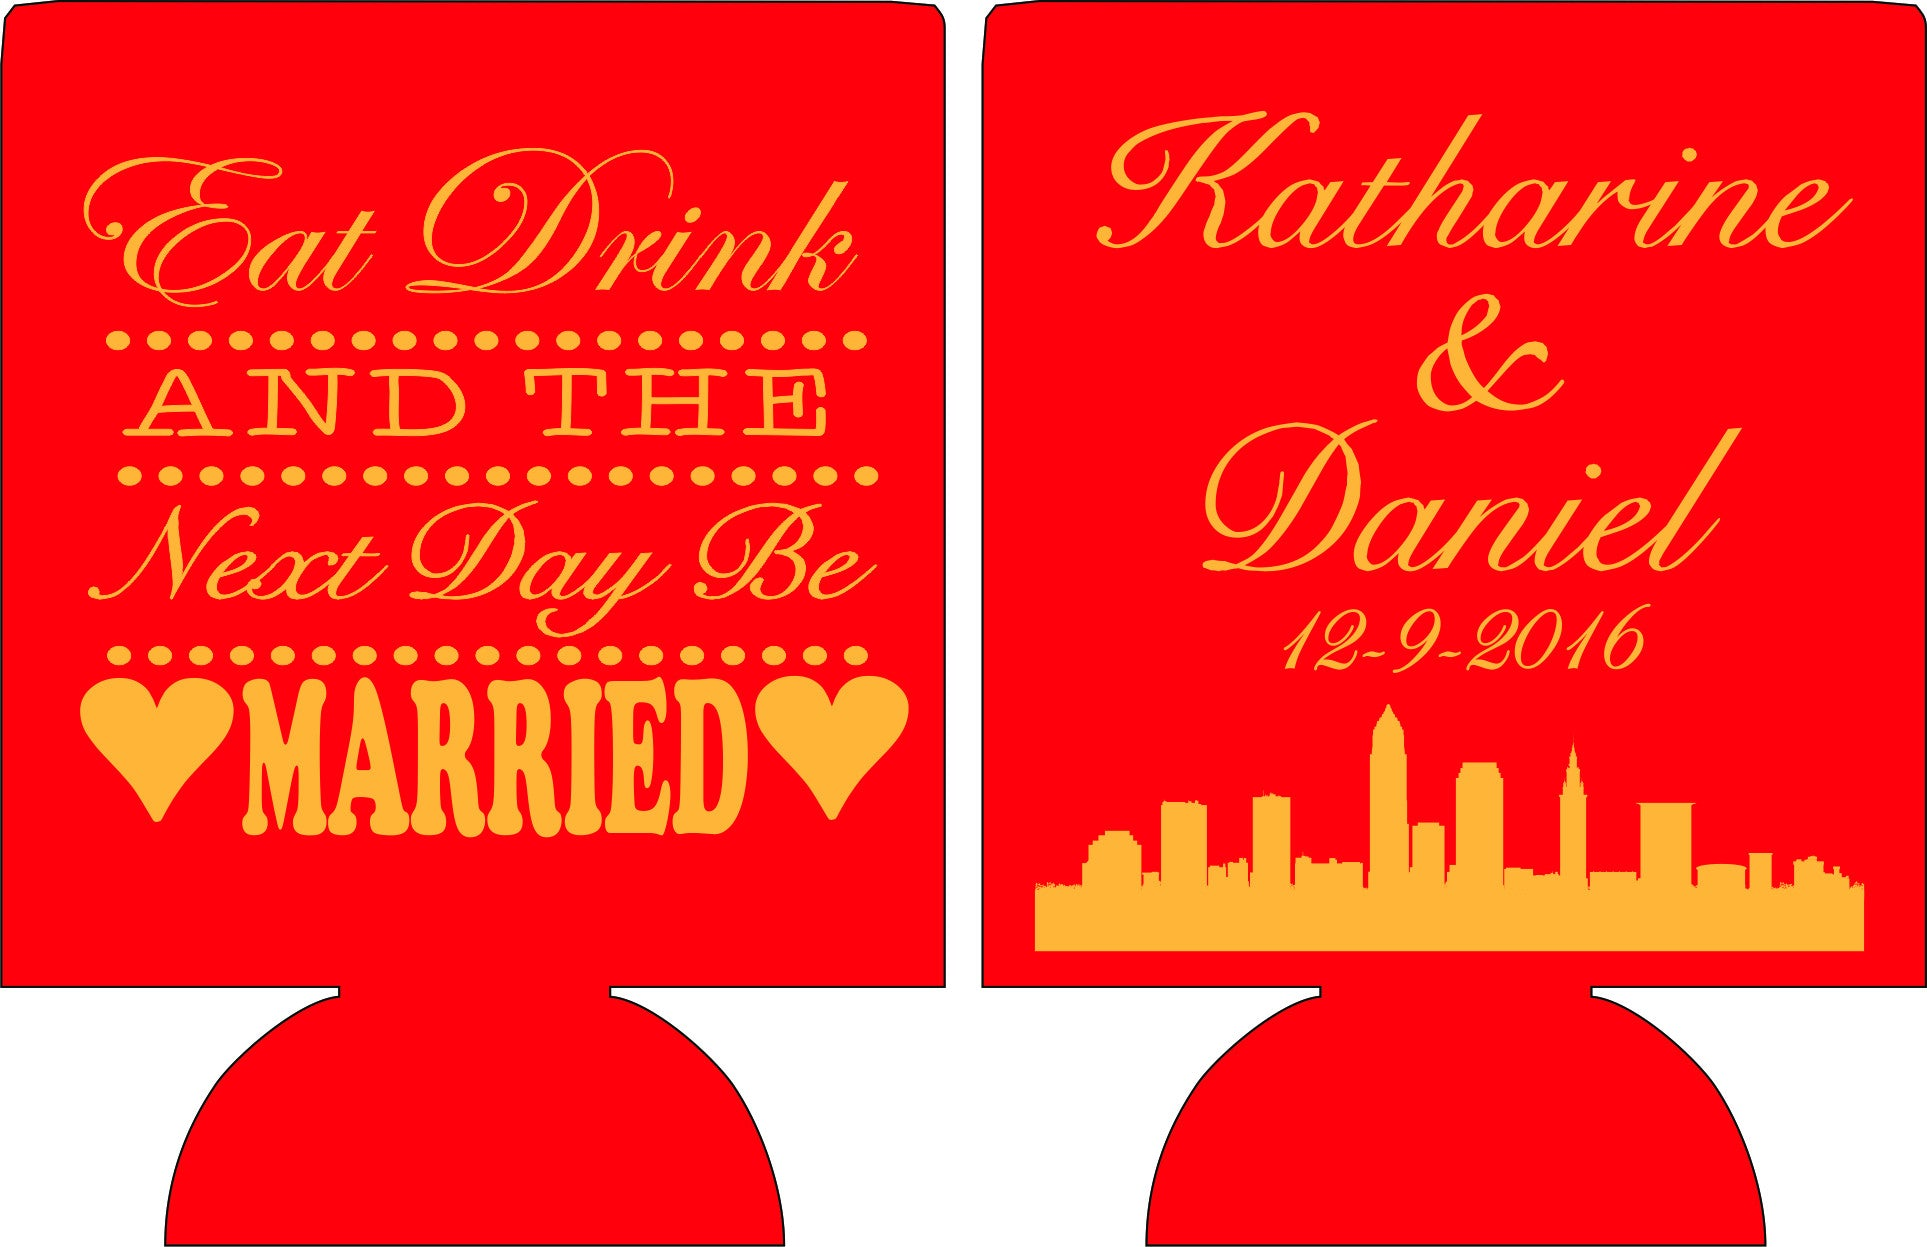 Eat Drink and Be Married wedding koozie the next day custom favors ...